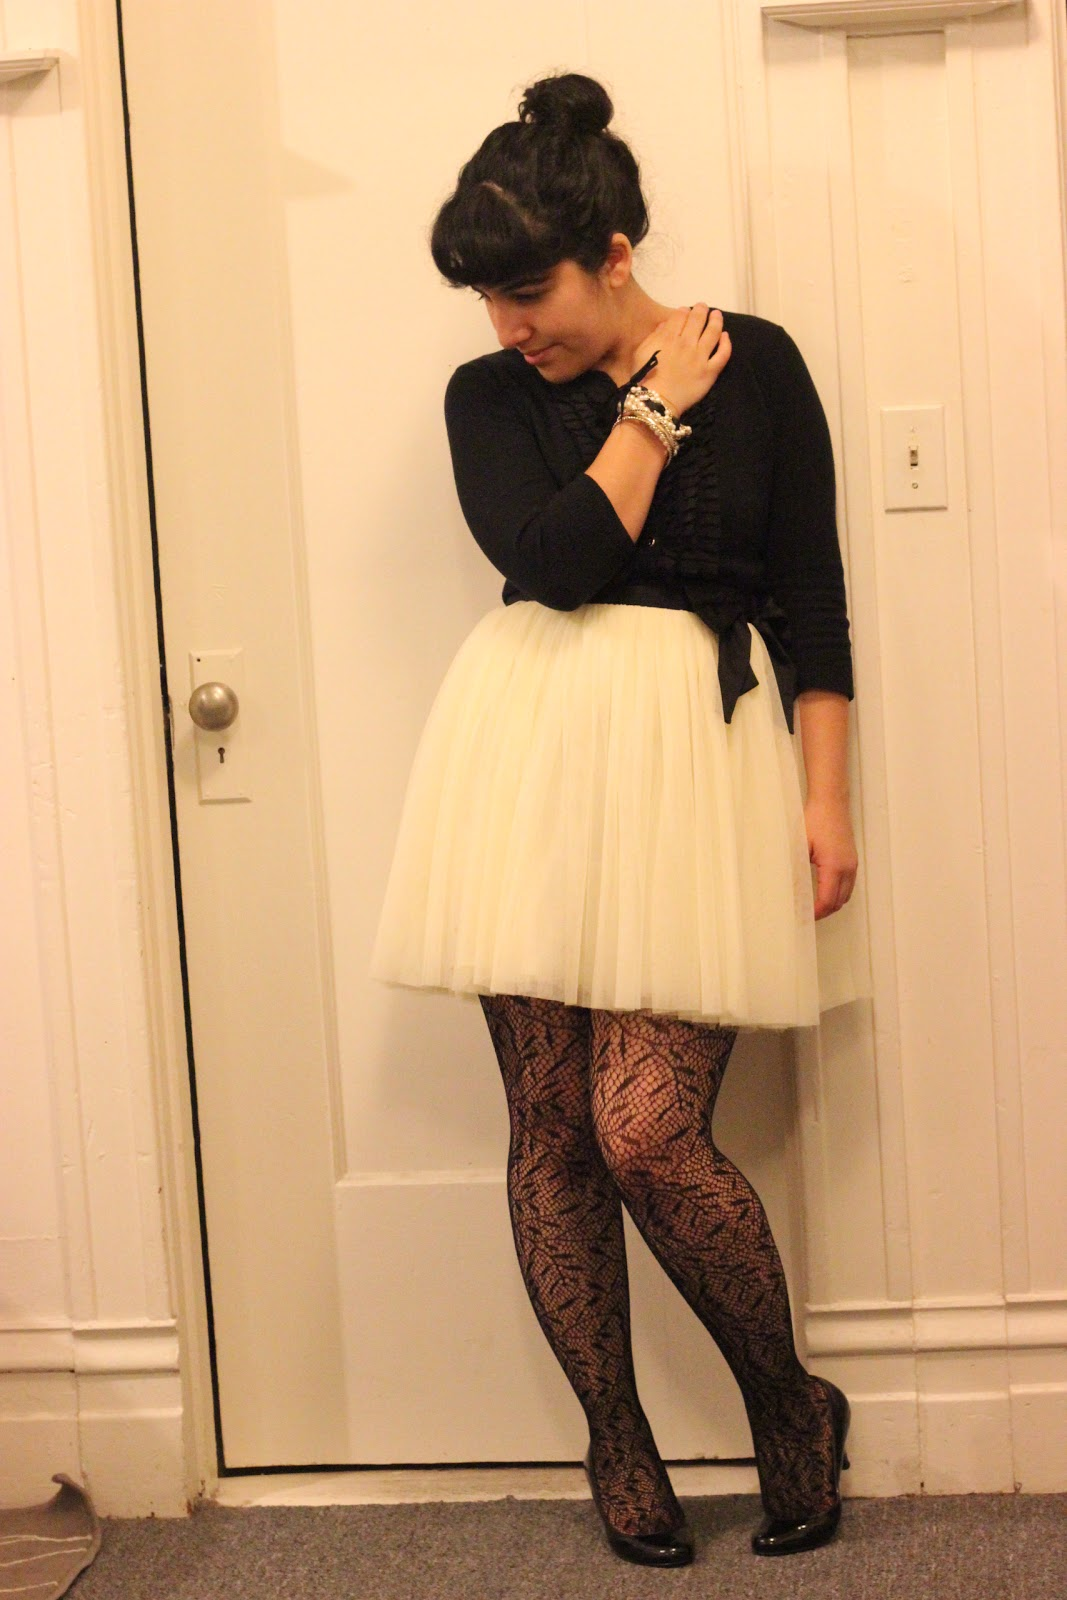 2019 year for women- How to patterned wear tights